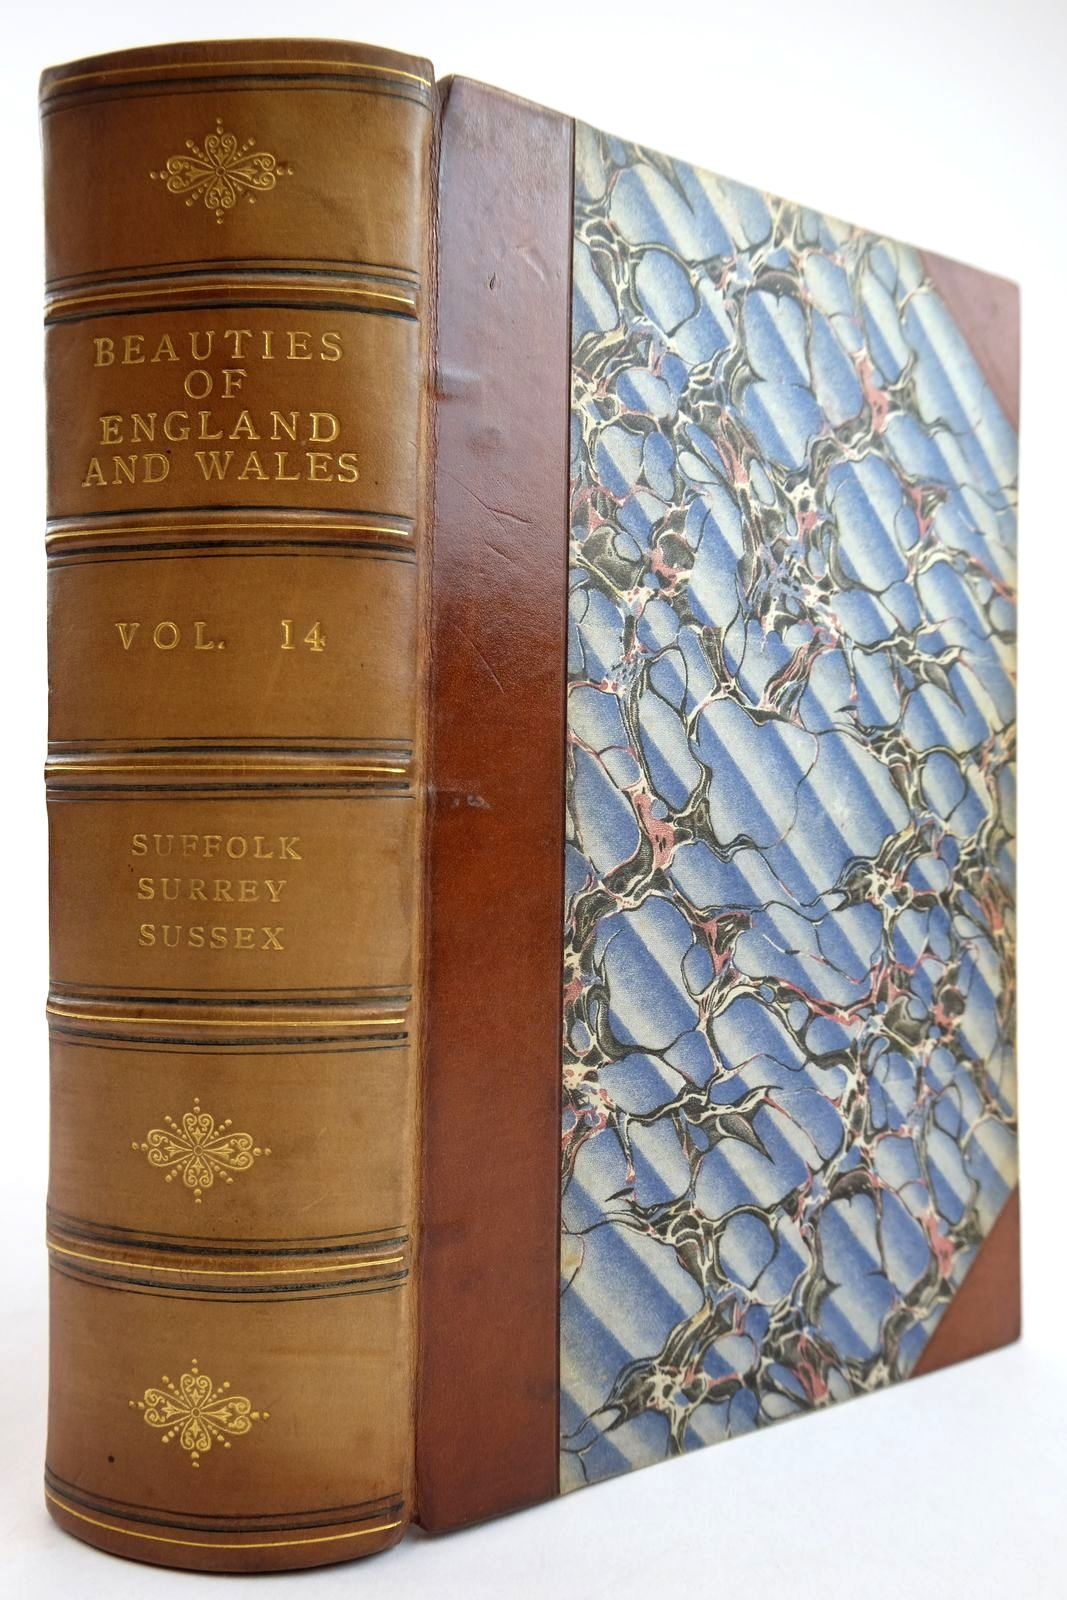 Photo of THE BEAUTIES OF ENGLAND AND WALES VOL. XIV: SUFFOLK, SURREY, SUSSEX- Stock Number: 2134136